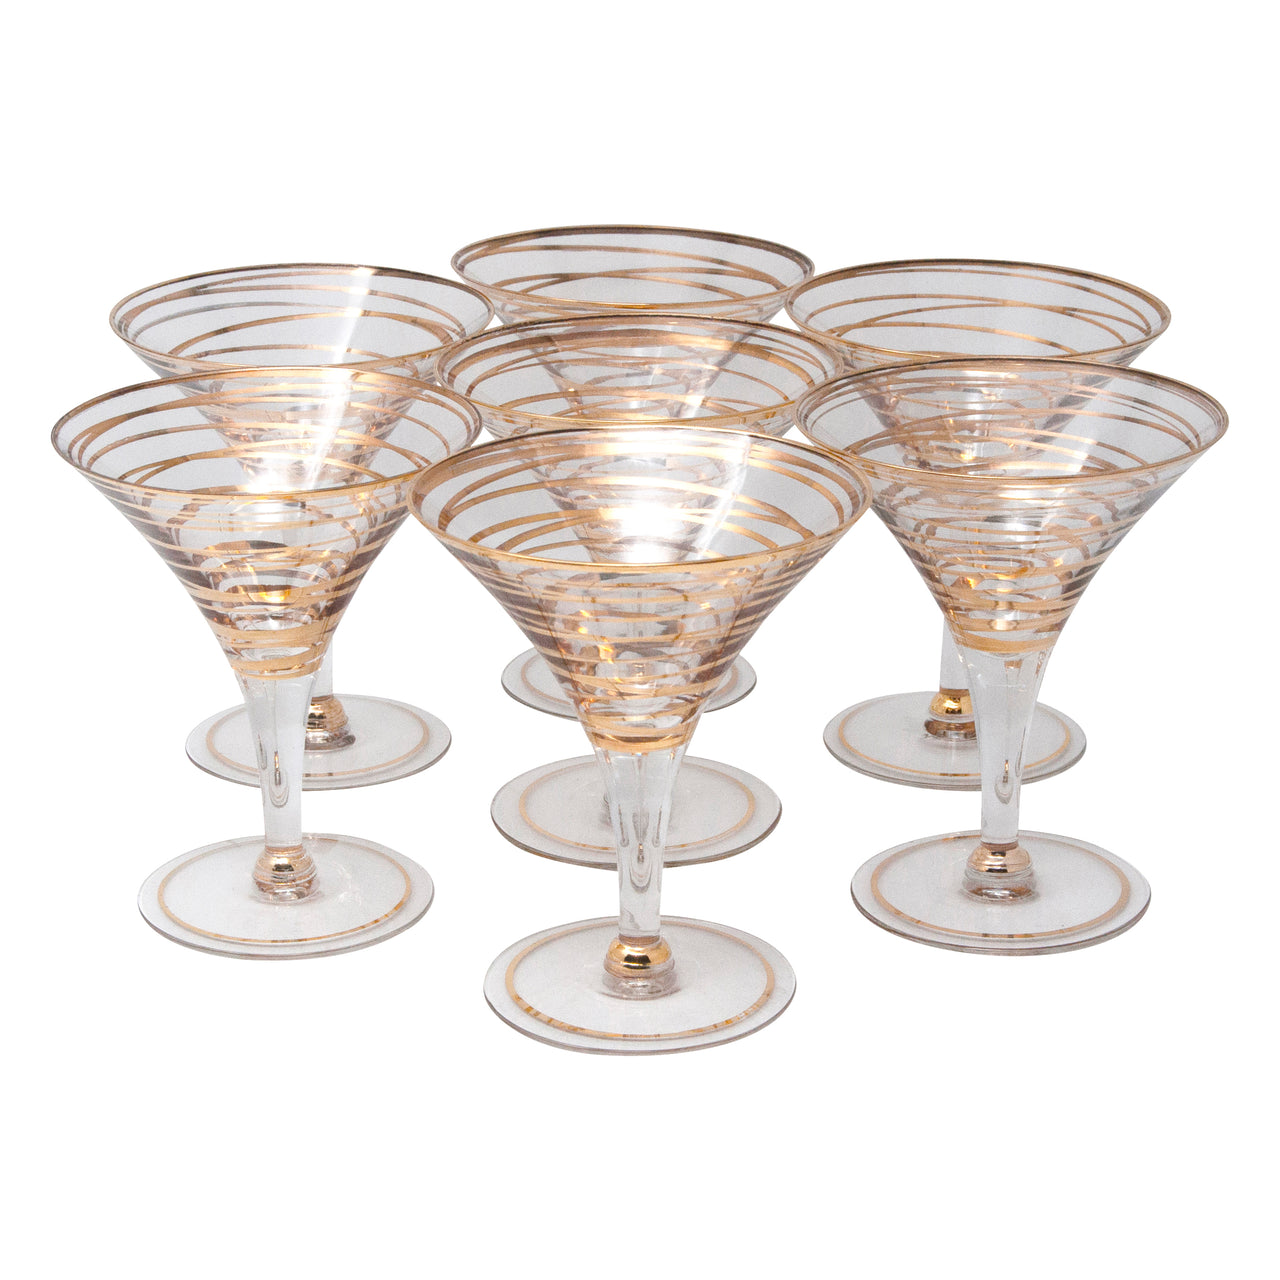 Vintage Gold Swirl Bands Martini Glasses | The Hour Shop